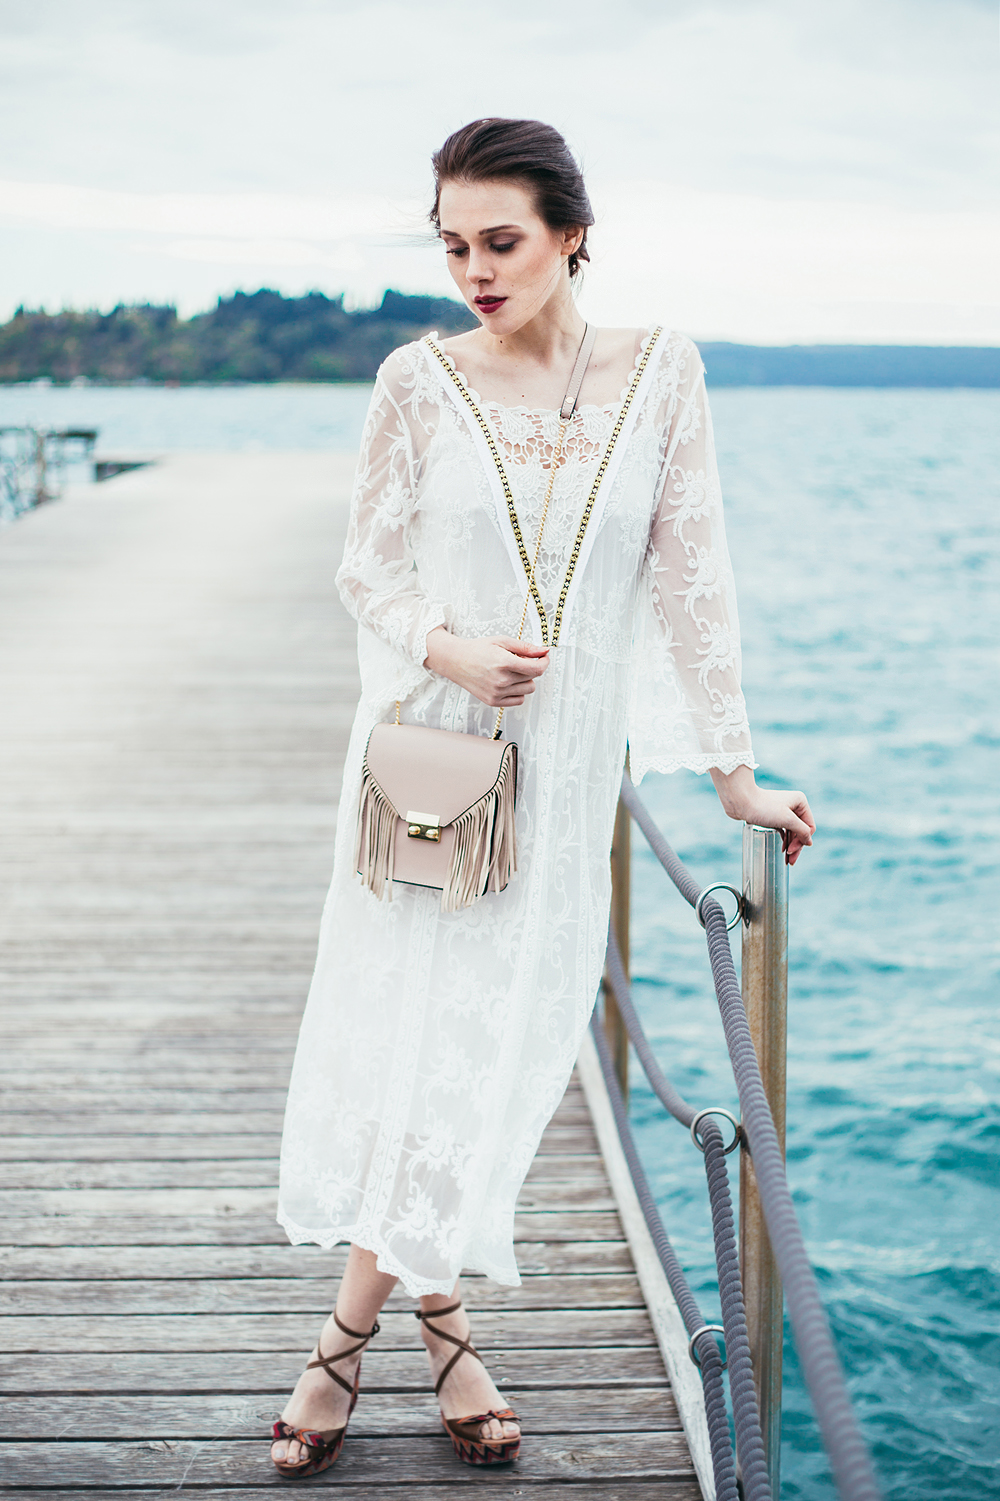 Eva Ahačevčič_Love, Eva_OOTD_FAshion blogger_Terminal 3_WHite dress_Boho_Portorož